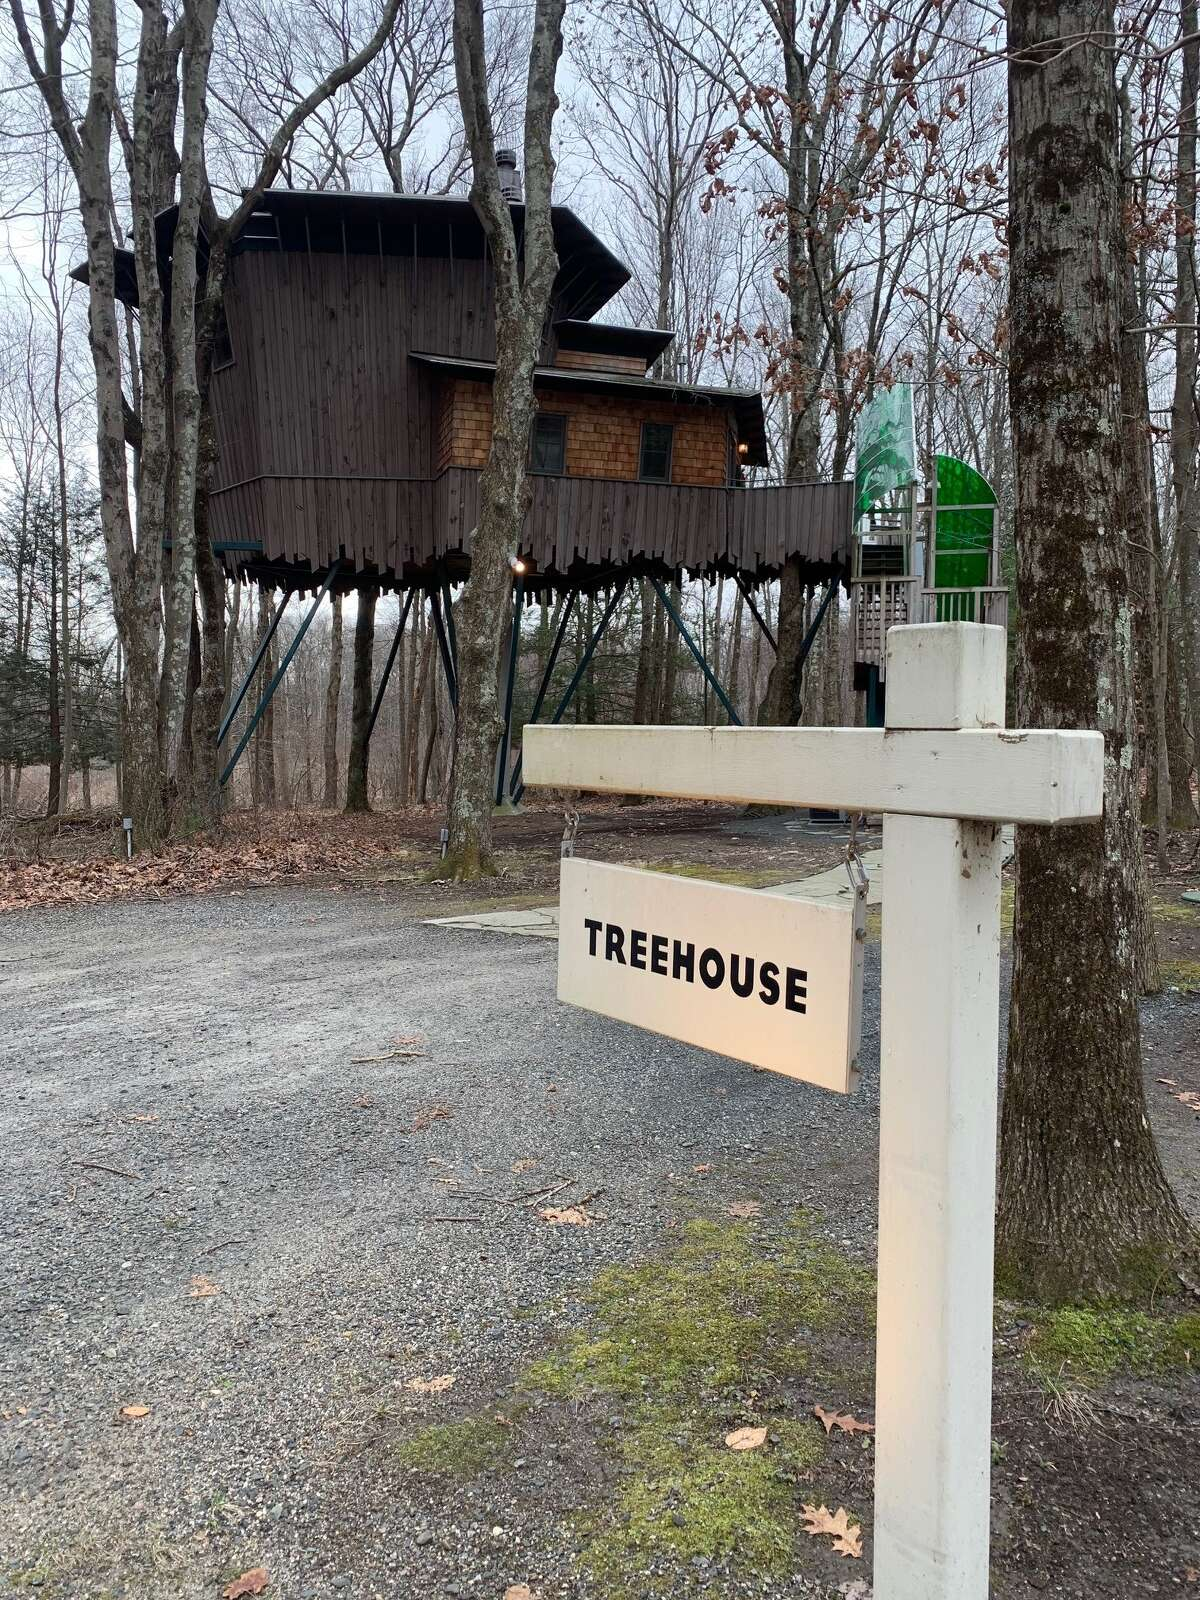 The Treehouse suite at Winivan Farms in Morris, Connecticut.